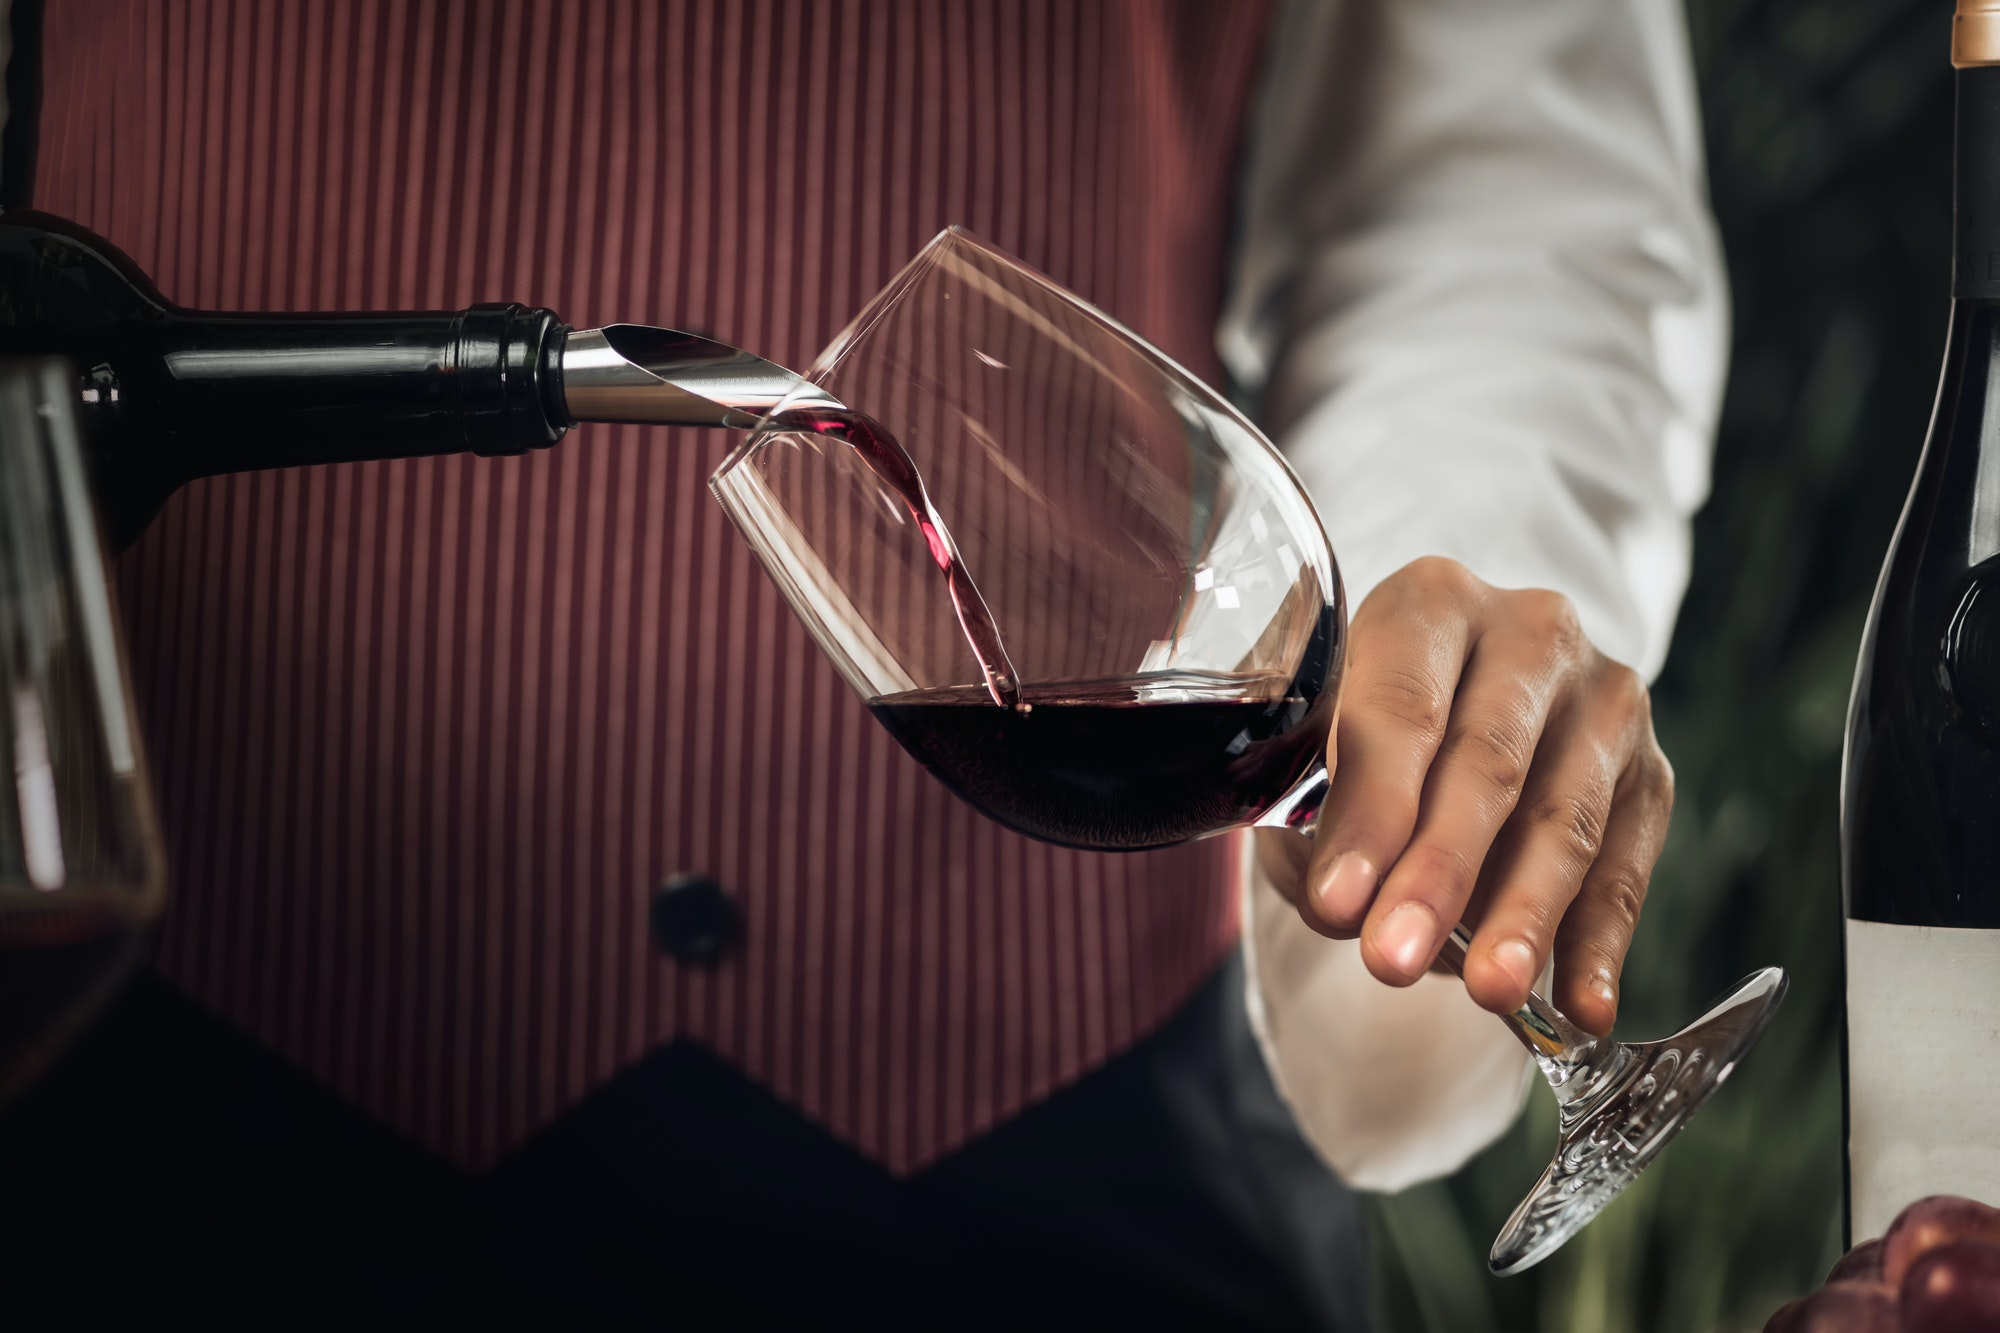 Top 8 benefits of drinking wine that you may not know